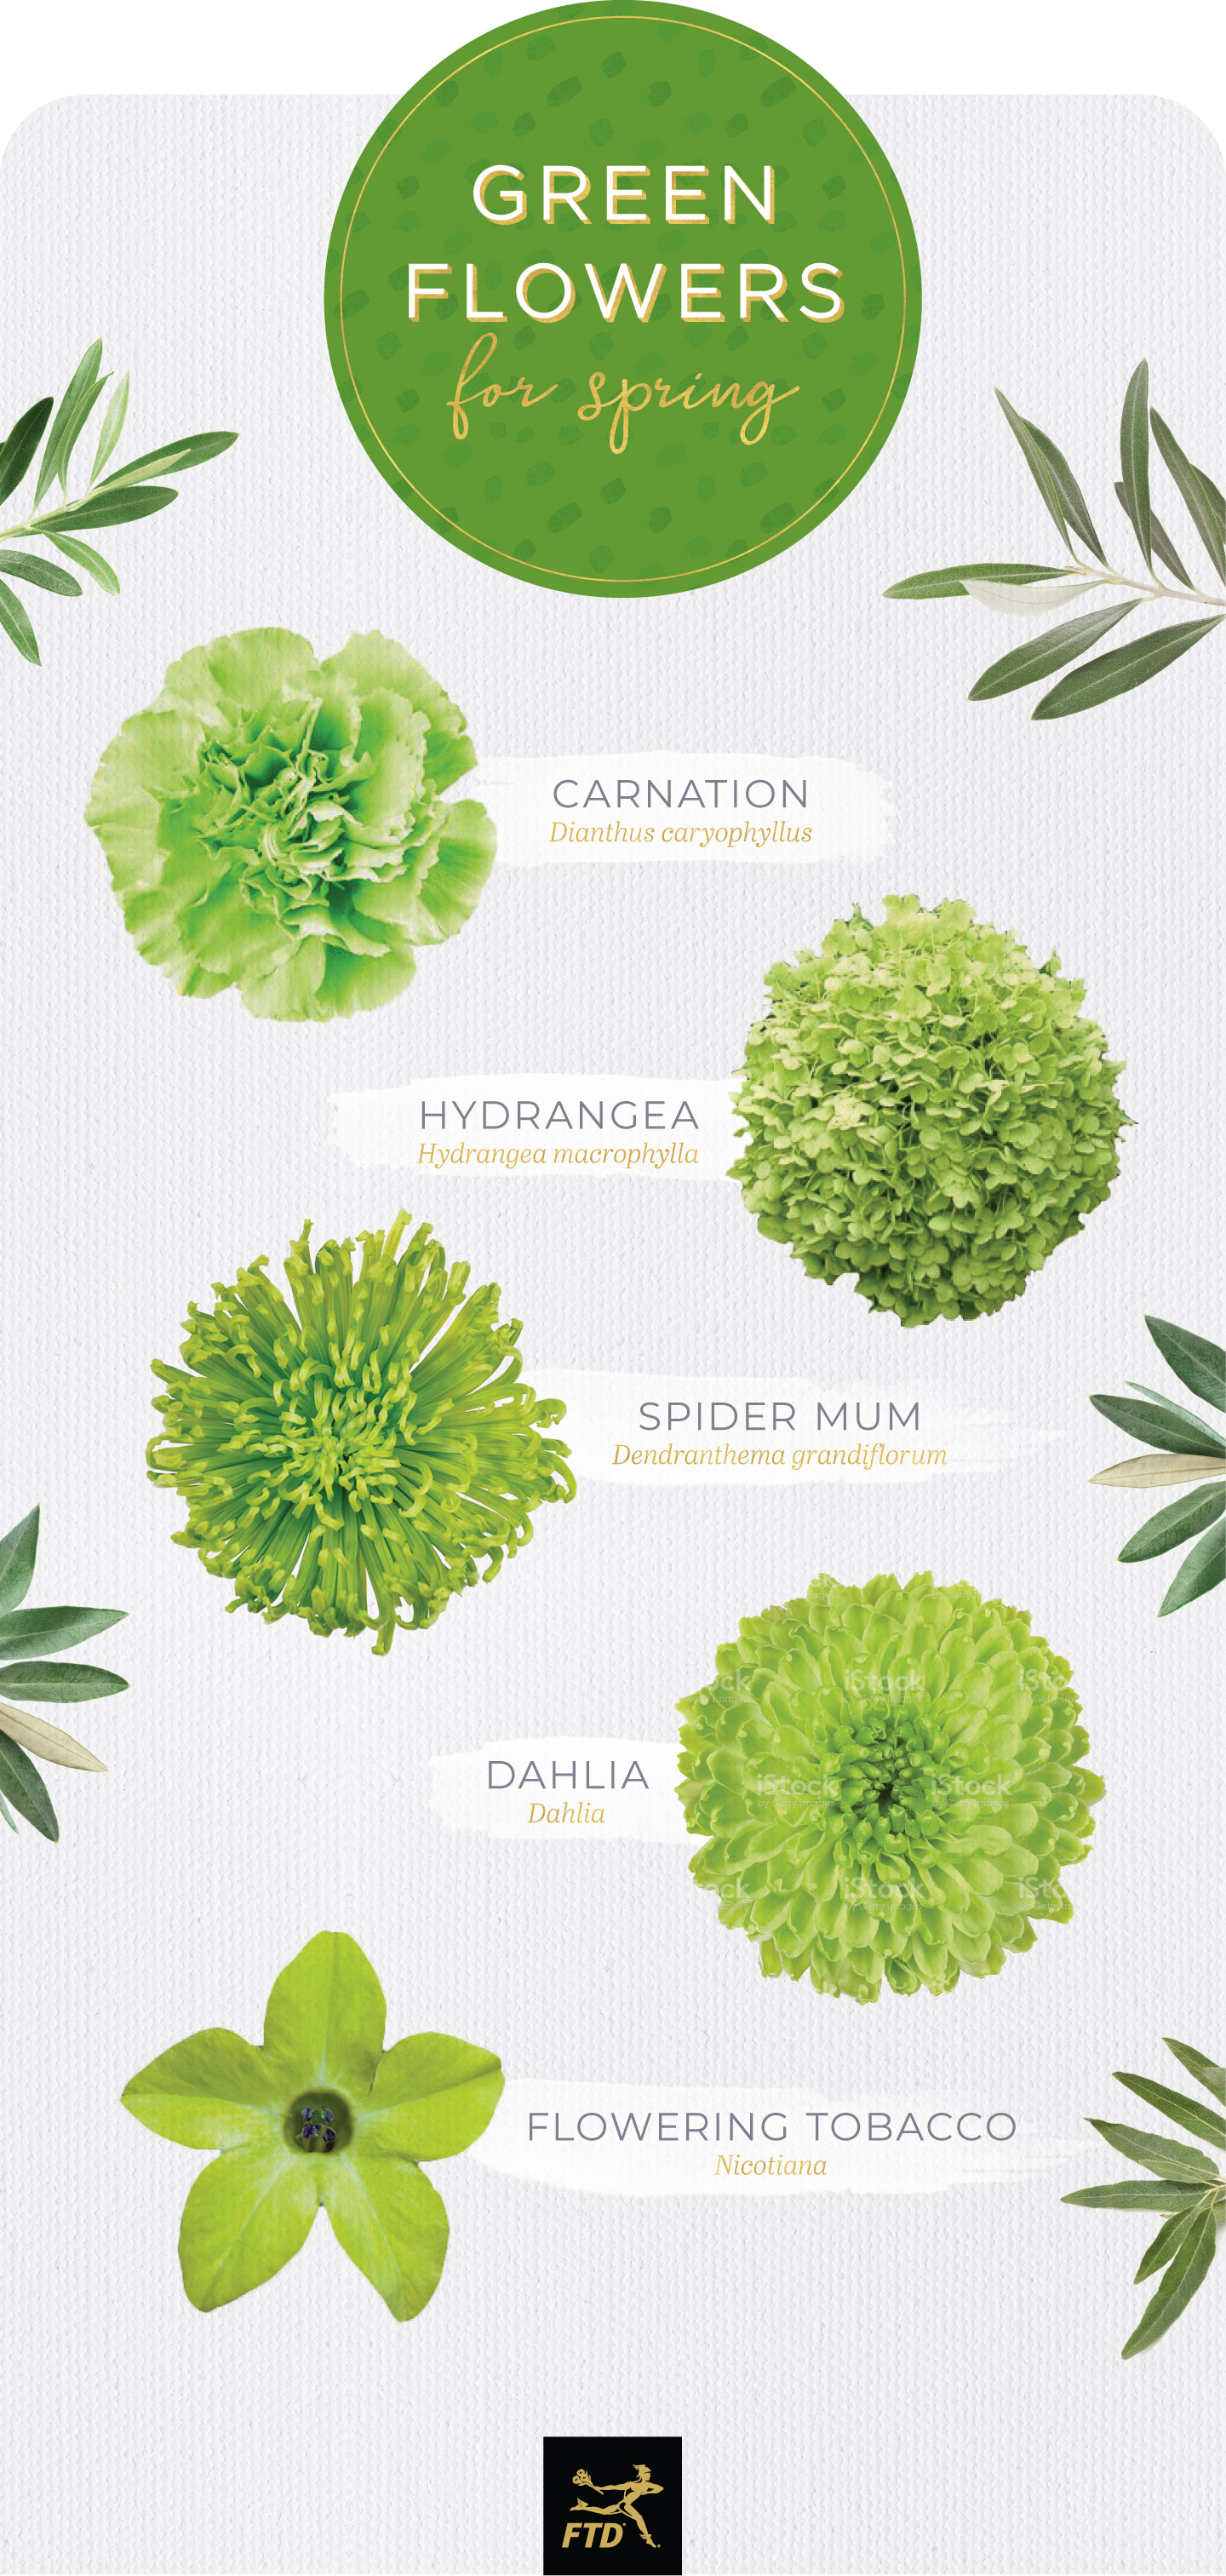 types of green flowers spring